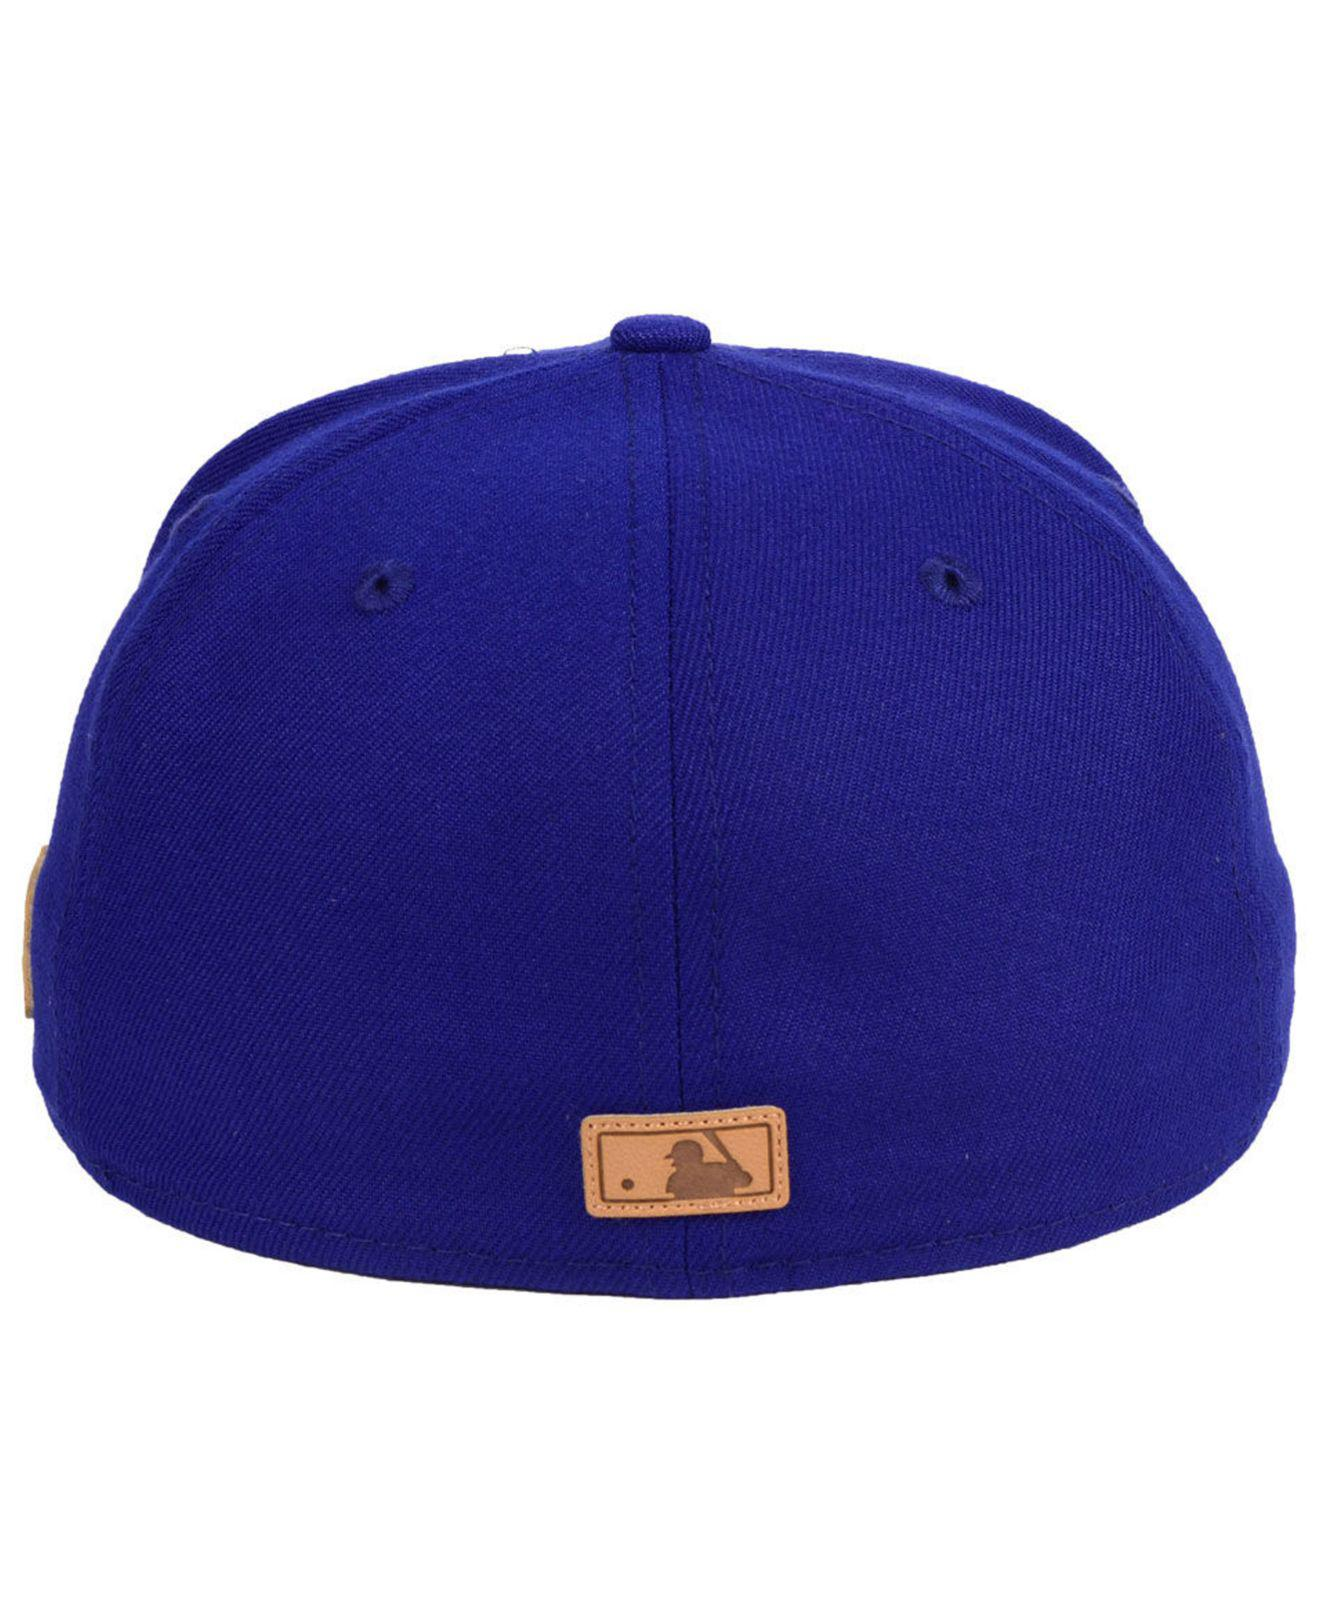 newest b32ee 8d2f9 ... low cost lyst ktz texas rangers vintage team color 59fifty fitted cap  in blue for men